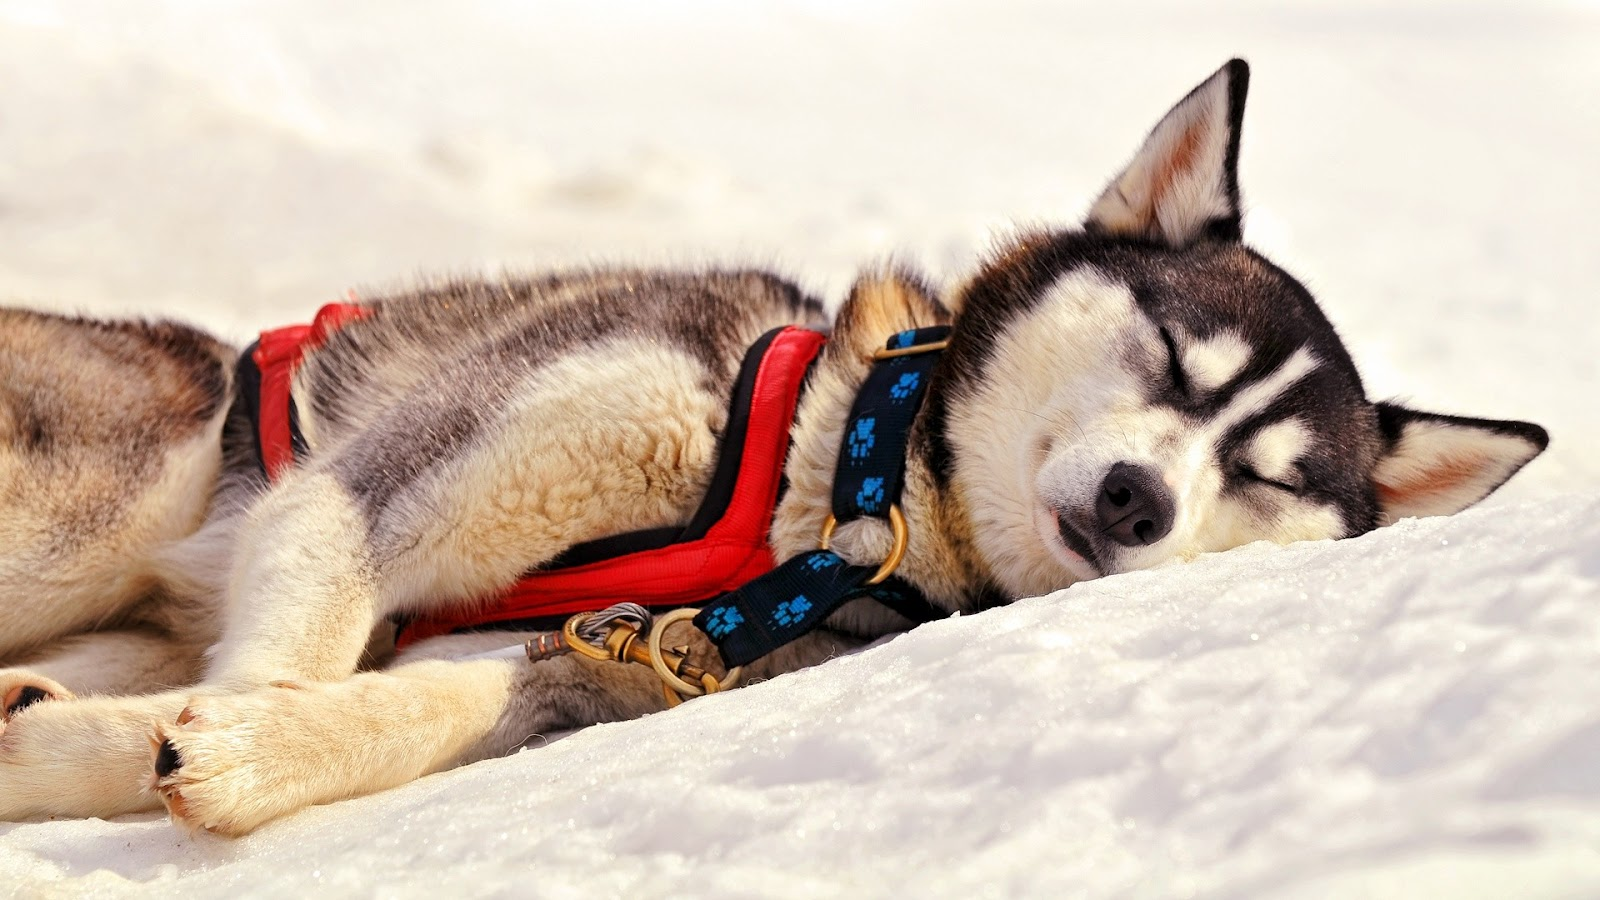 http://2.bp.blogspot.com/-e4ZEn7F5Xgg/UGgnohUZWoI/AAAAAAAAALU/p41DNxOPlcg/s1600/Sleeping-Husky-Dog-on-Snow-HD-Animal-Wallpaper.jpg